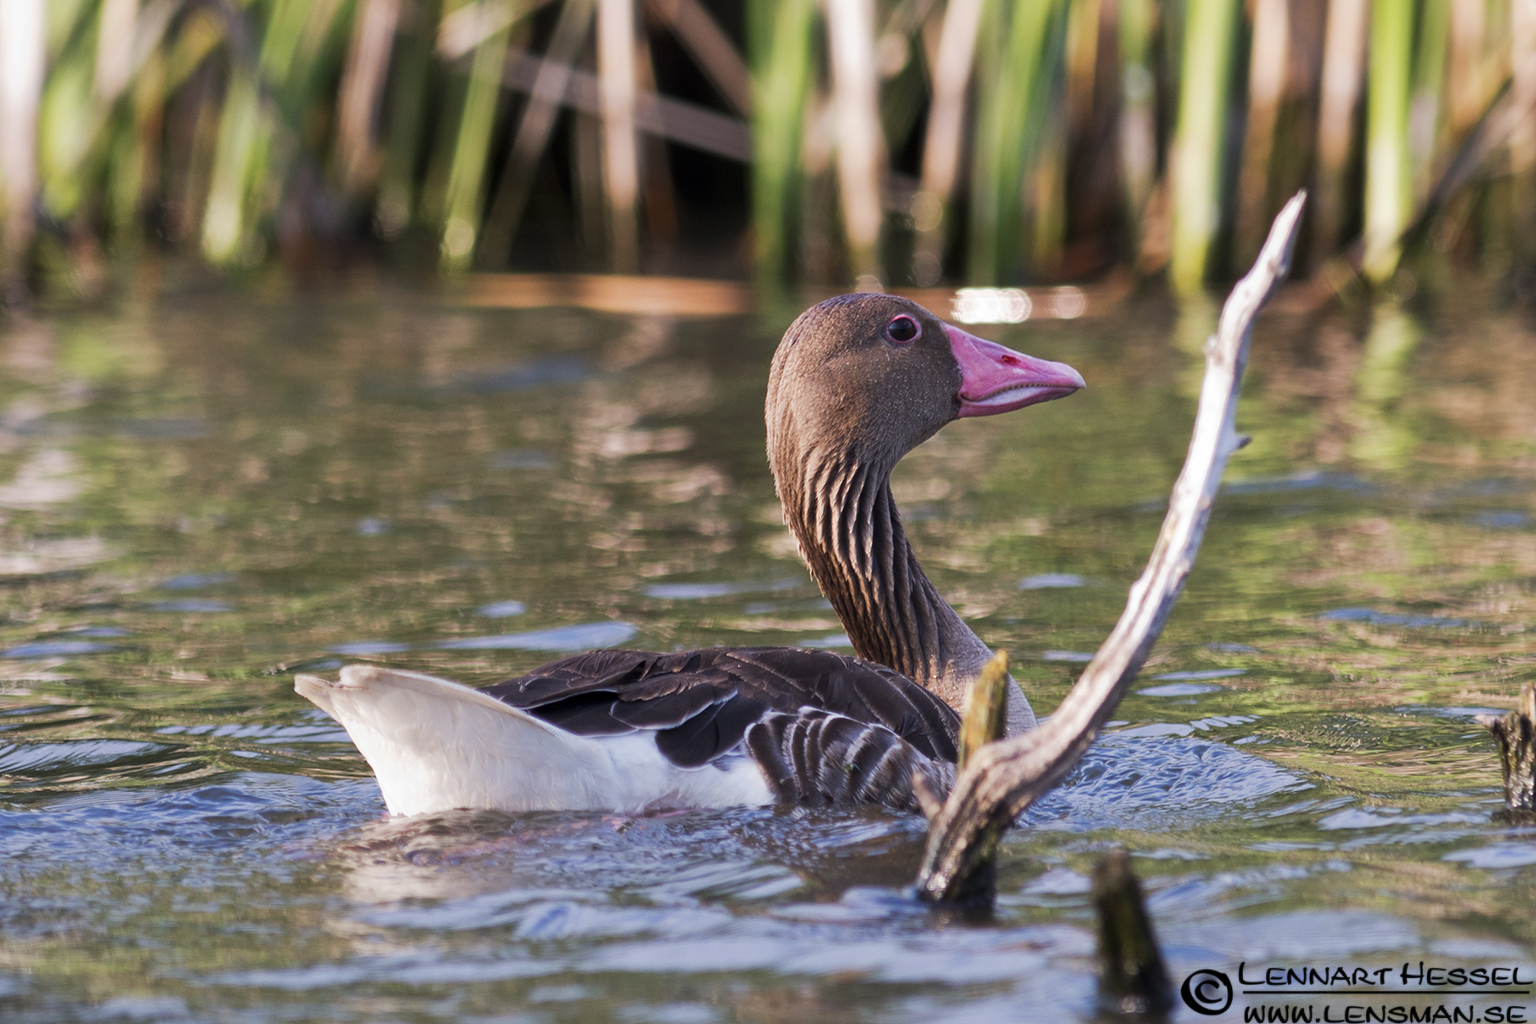 Greylag Goose in Hungary